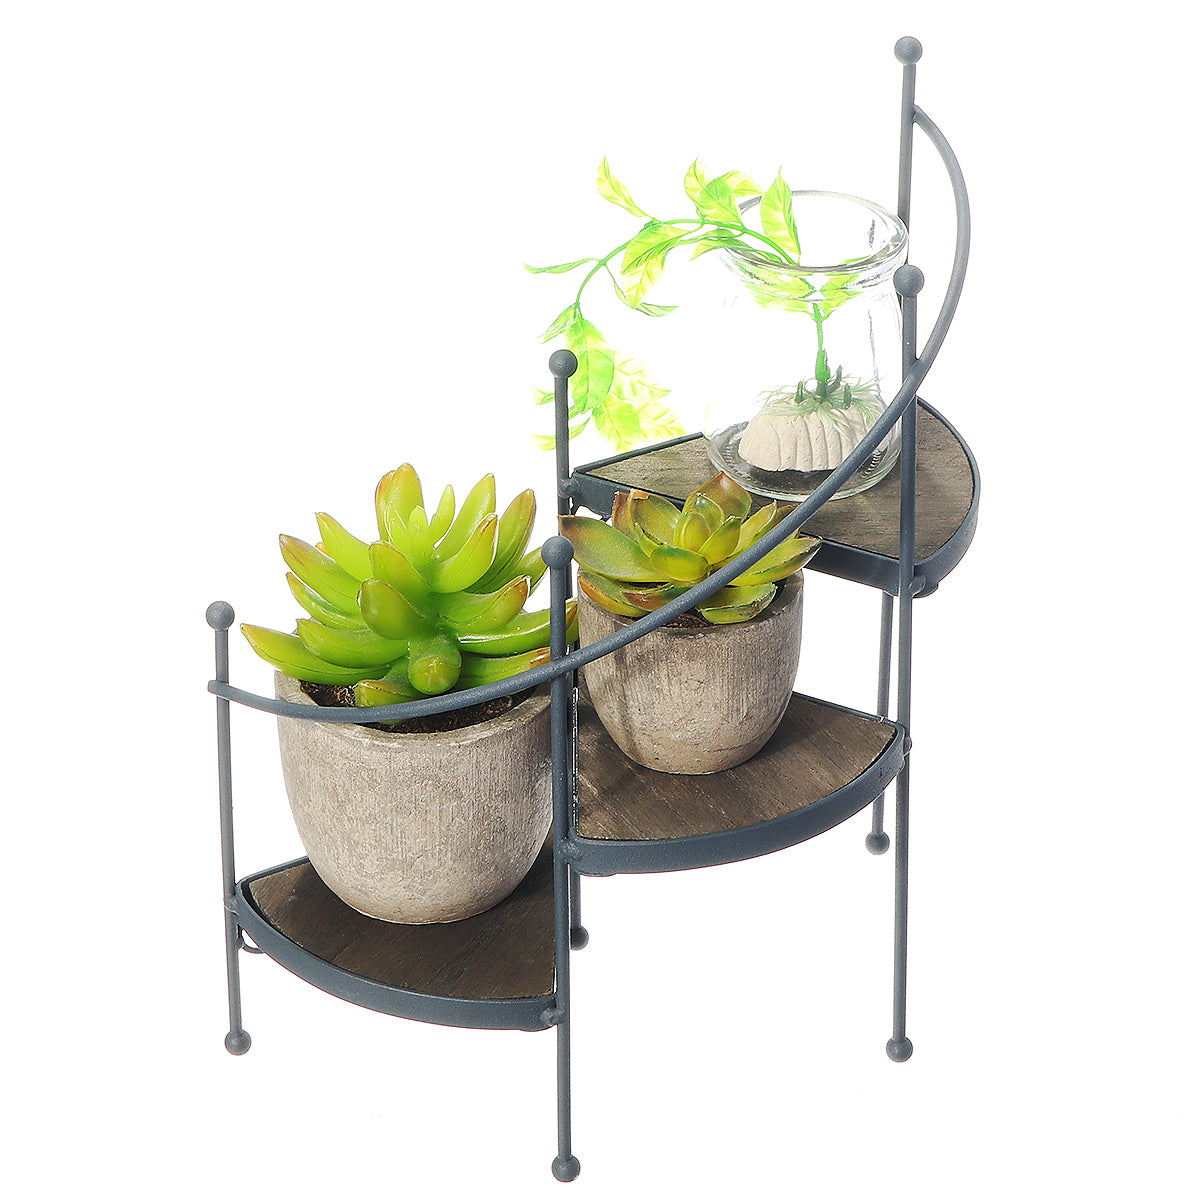 PlantDecor™ 3 Tier Spiral Wood & Iron Indoor/Outdoor Flower Staircase Plant Rack